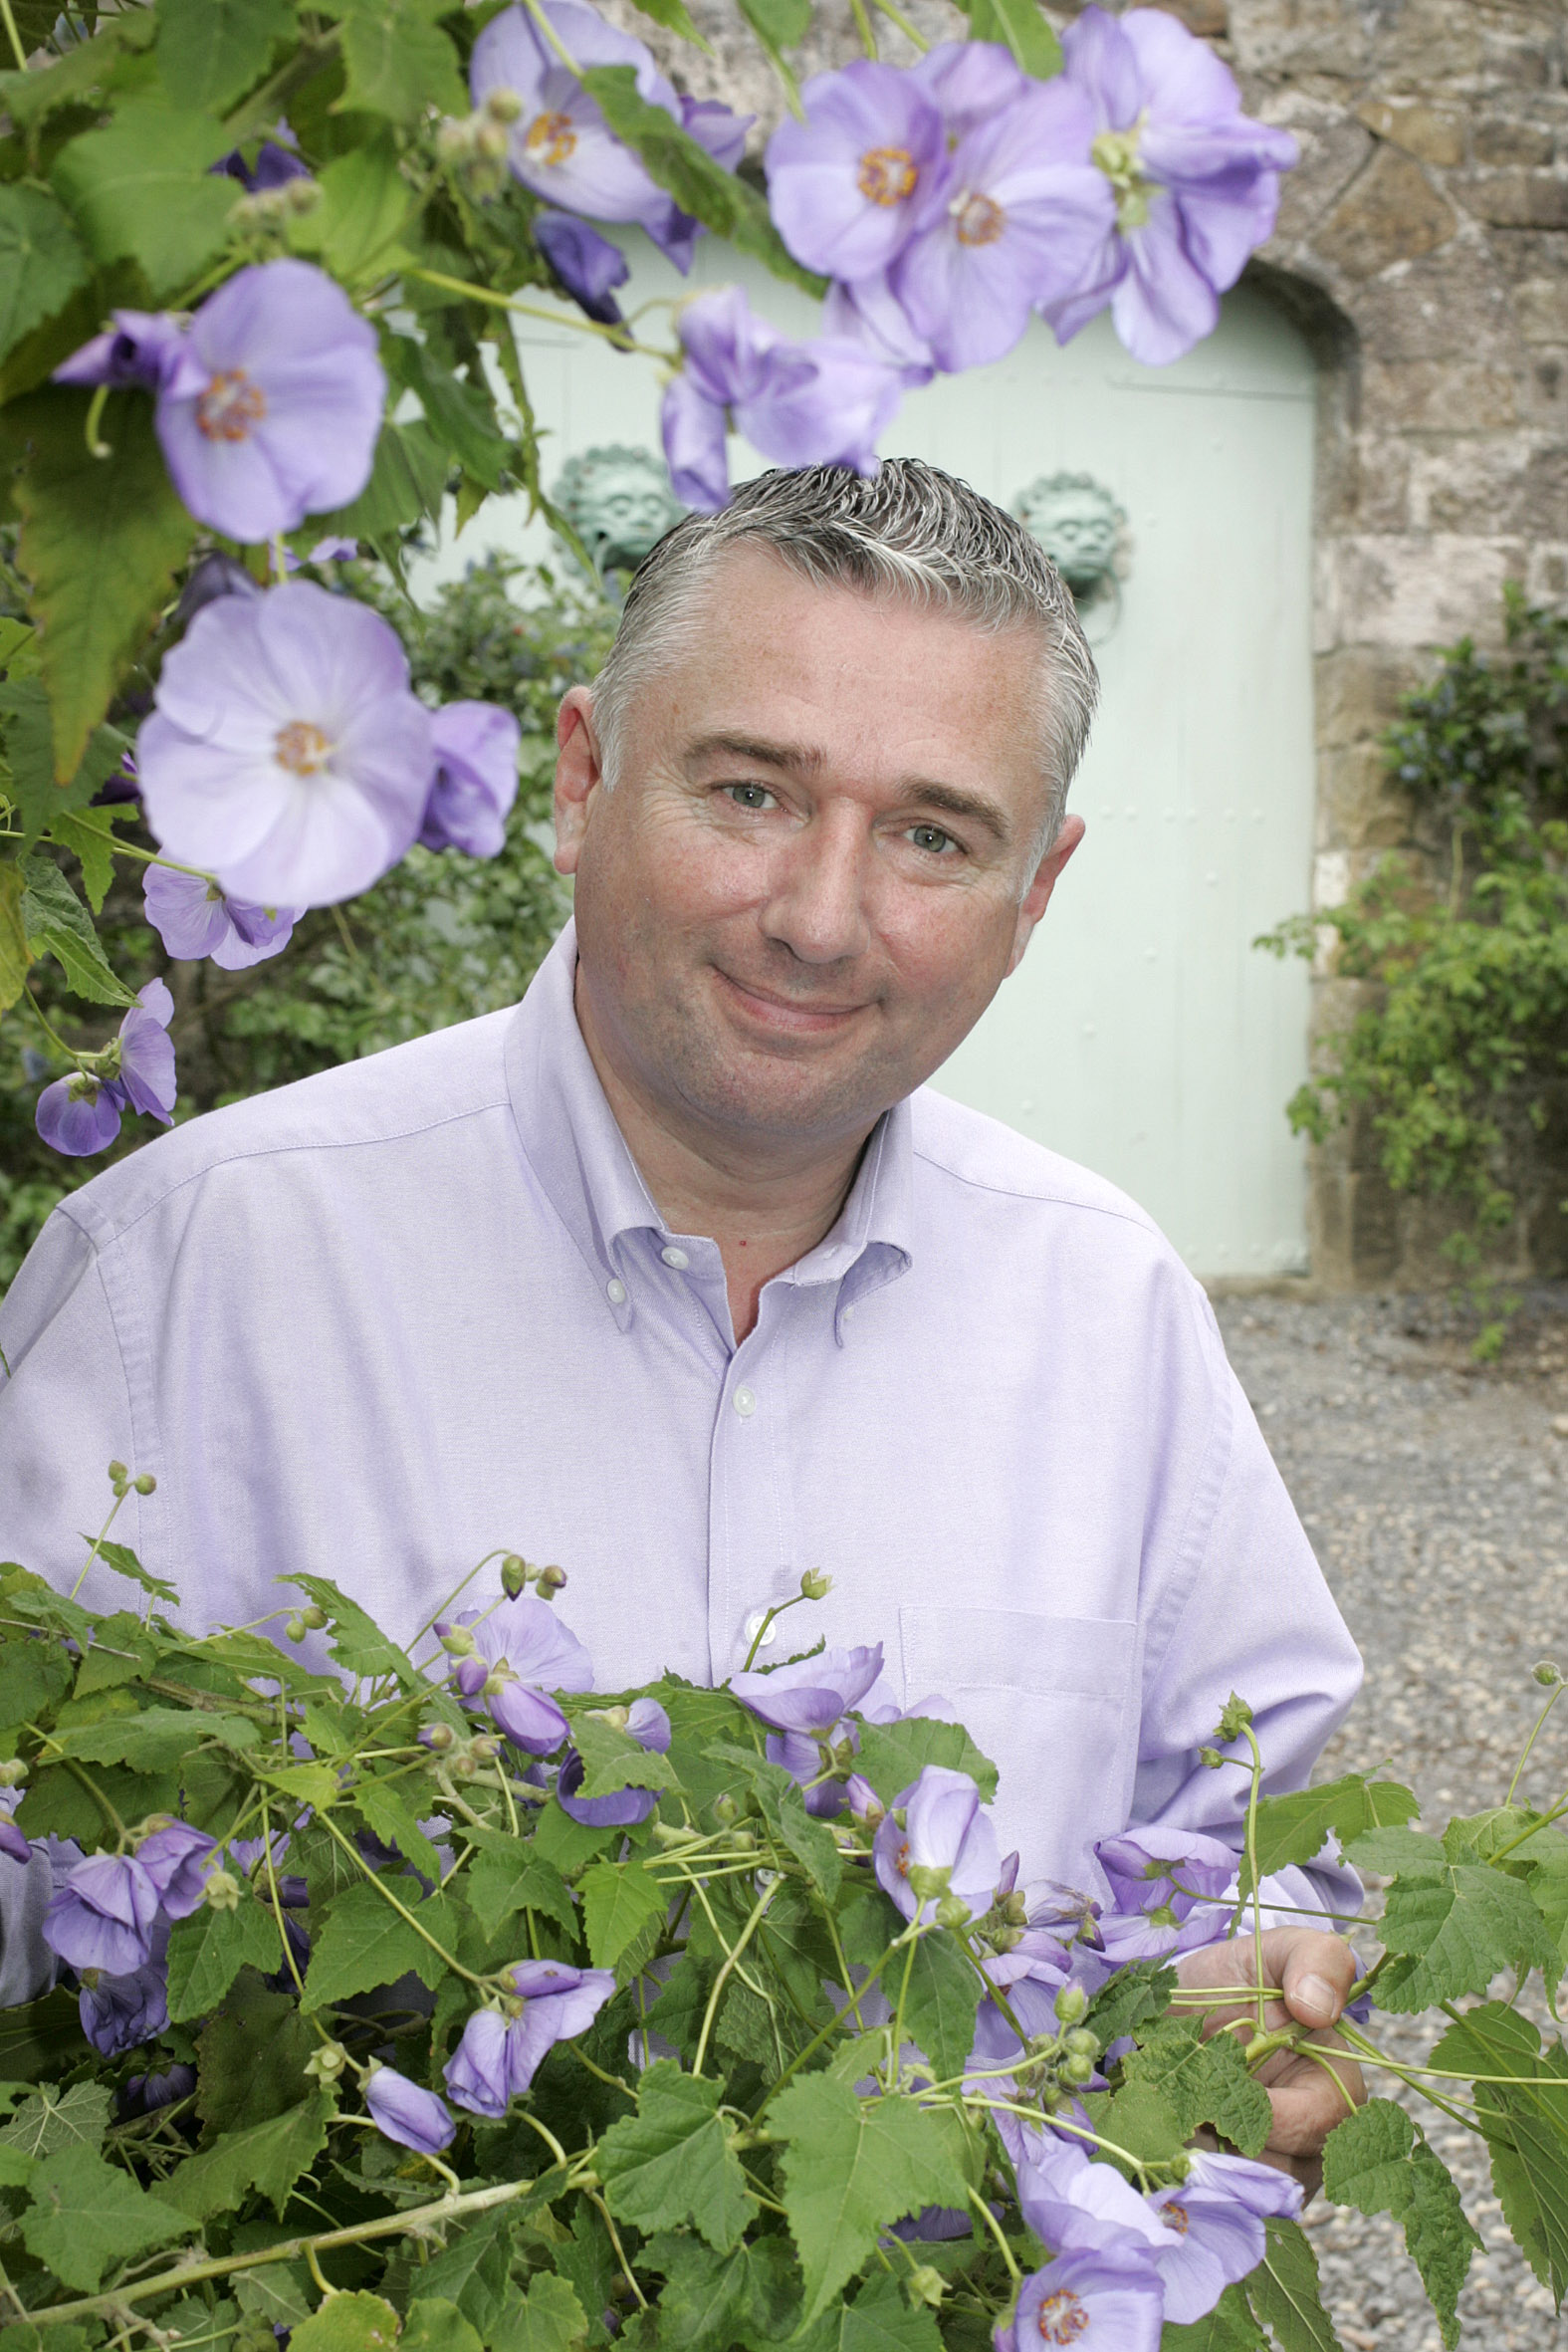 Dermot O'Neill relaxes in his walled garden at Clondeglass , co Laois. Pix Ronan Lang/Feature File for weekend mag